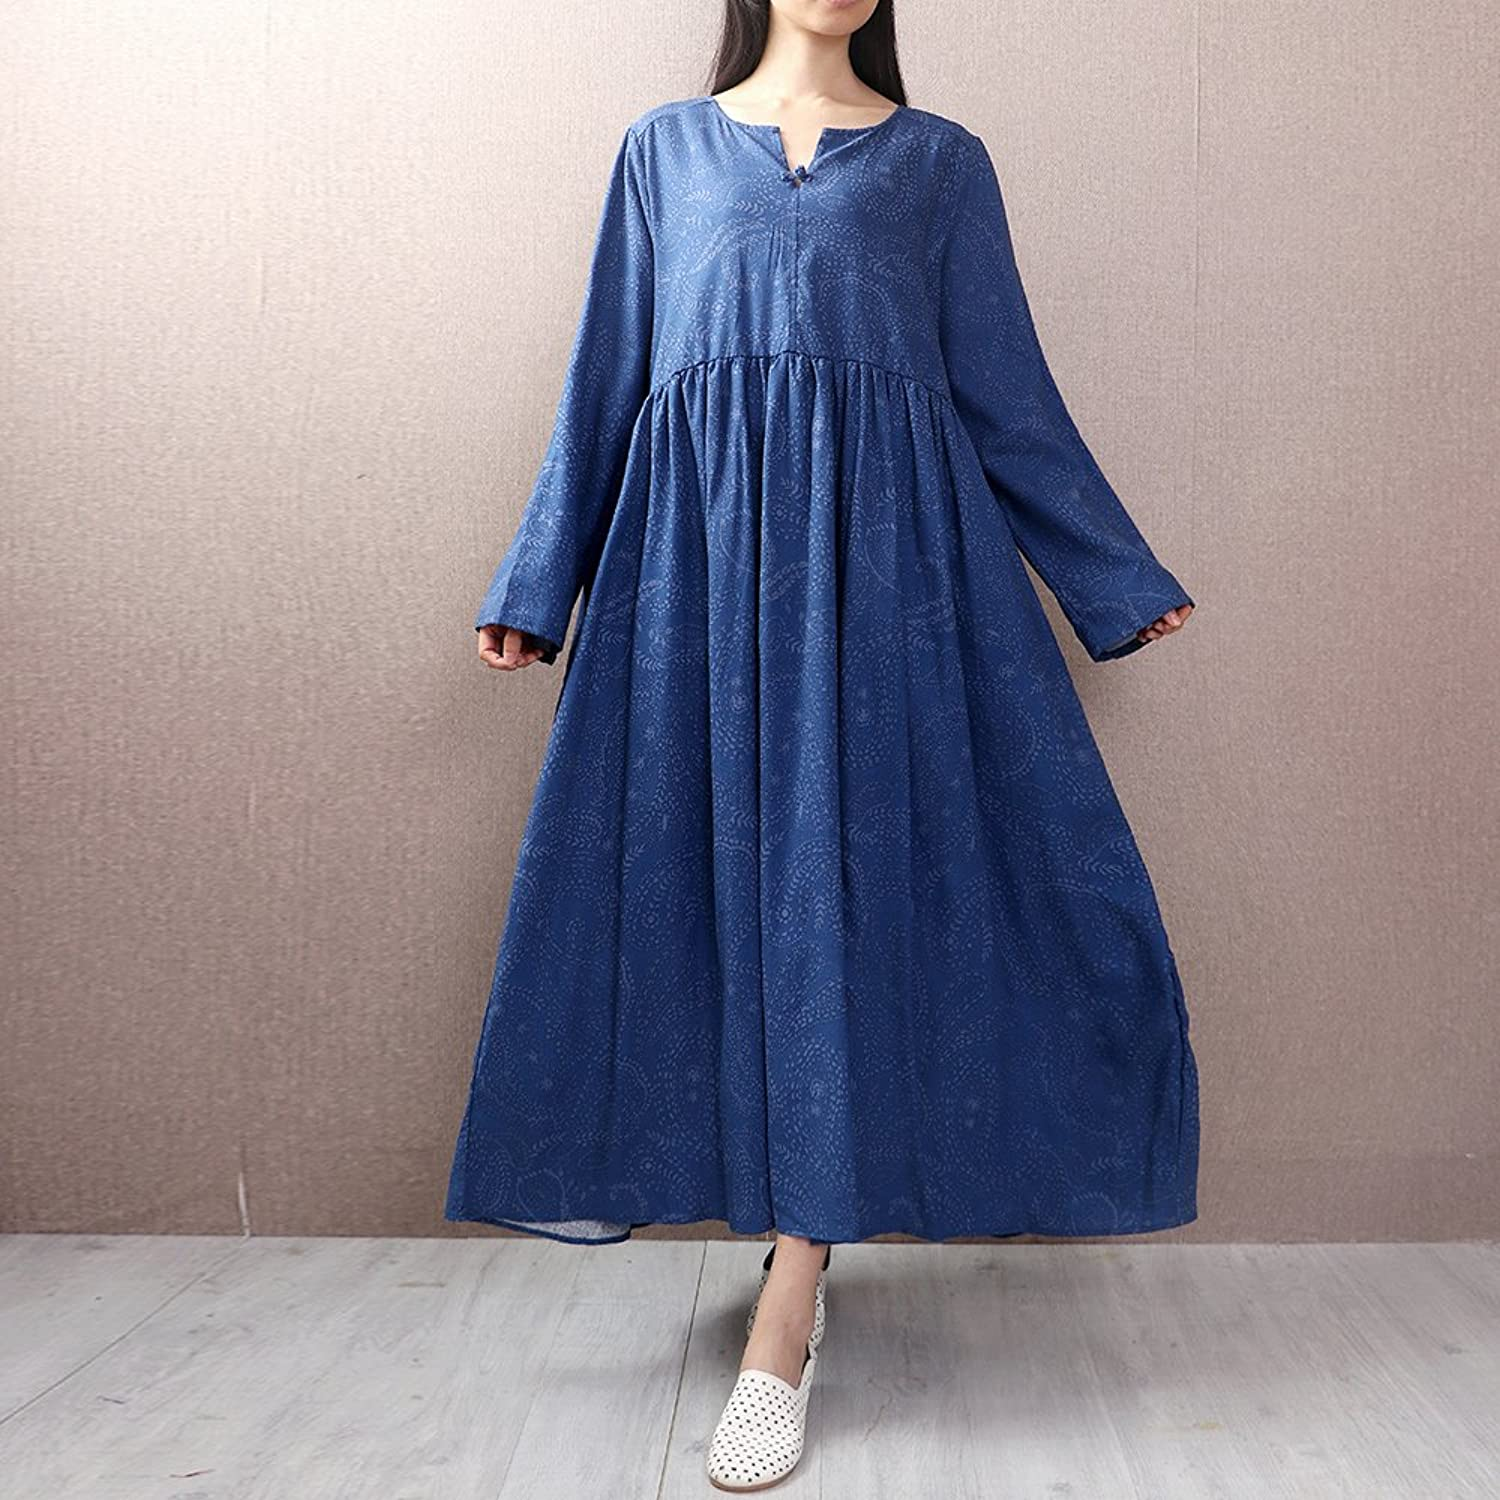 XIURONG Long Sleeved Cotton Dress Girls Long Loose Waist Skirt